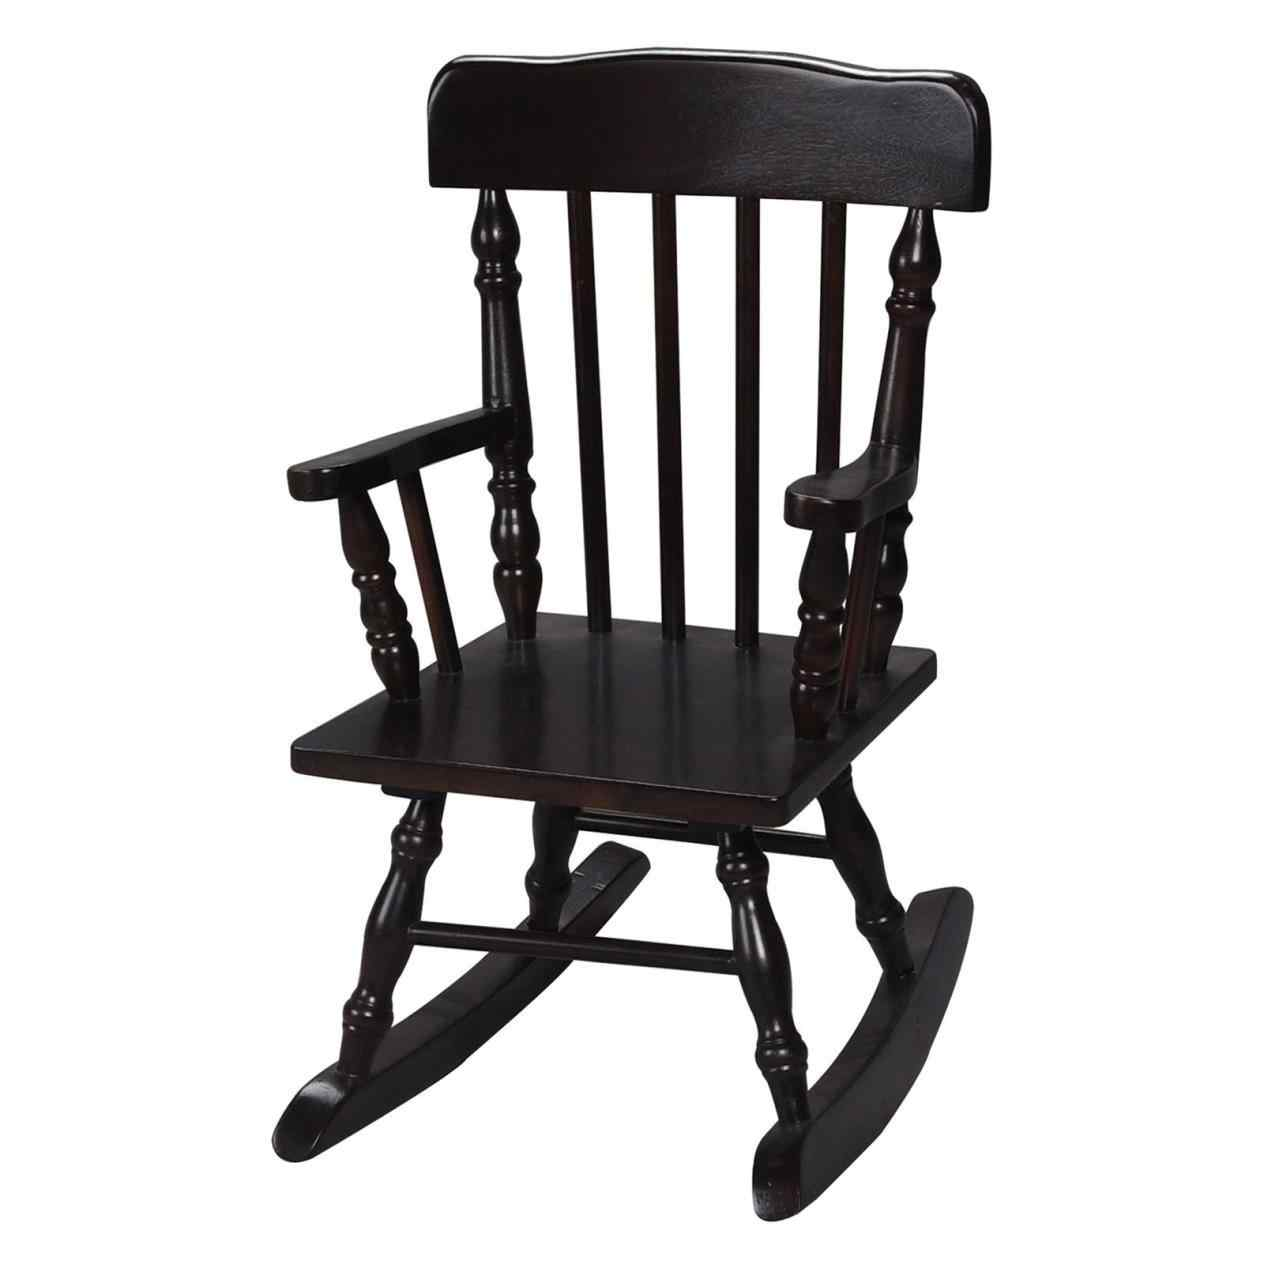 1264x1264 The Images Collection Of Child Rocking Chair Silhouette Colonial